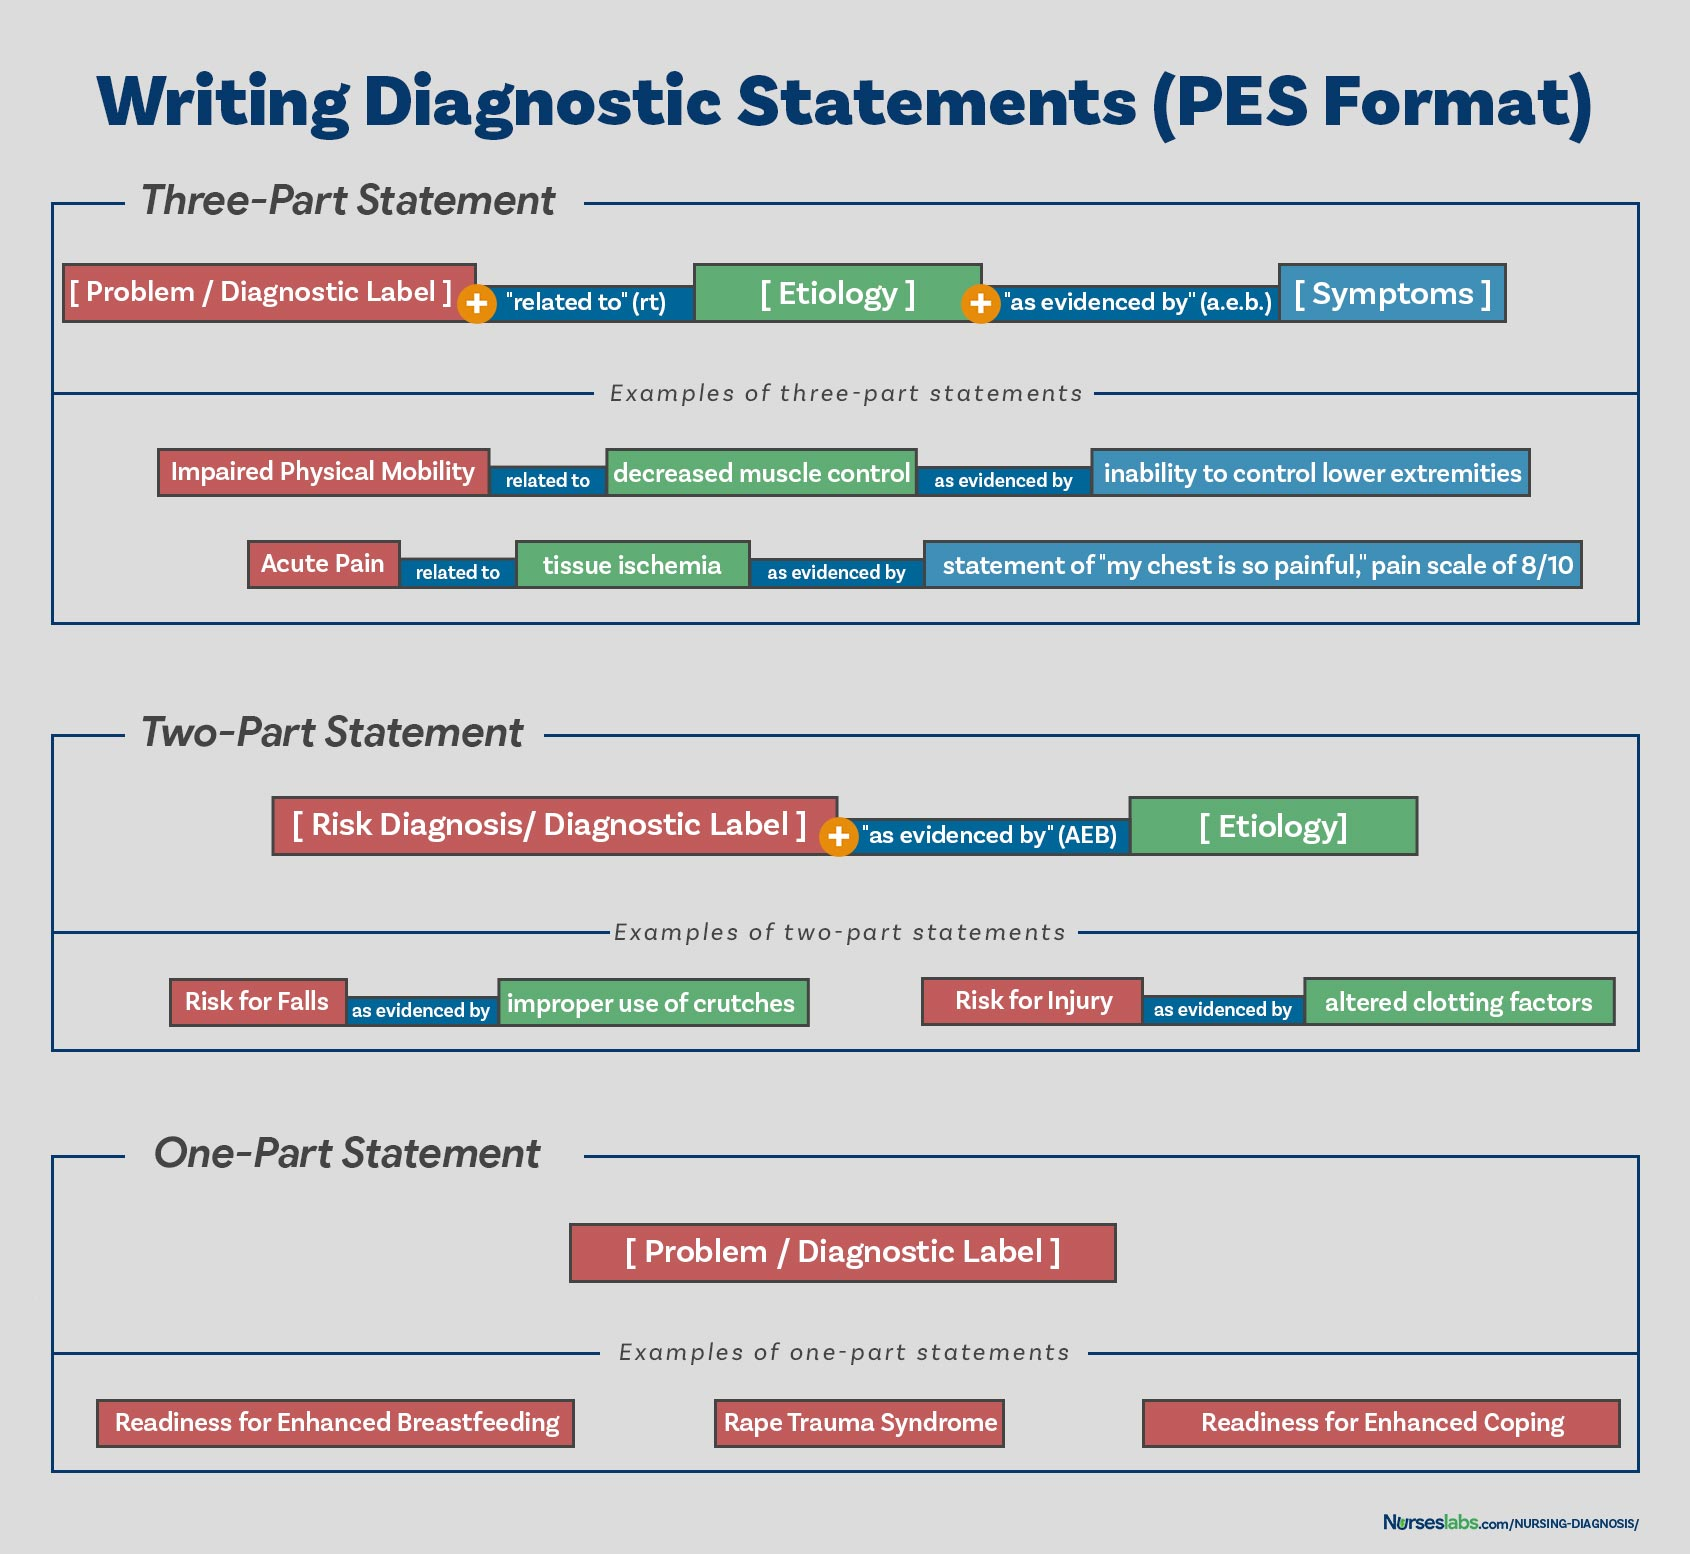 USING THE PES FORMAT. Writing nursing diagnoses using the PES format.